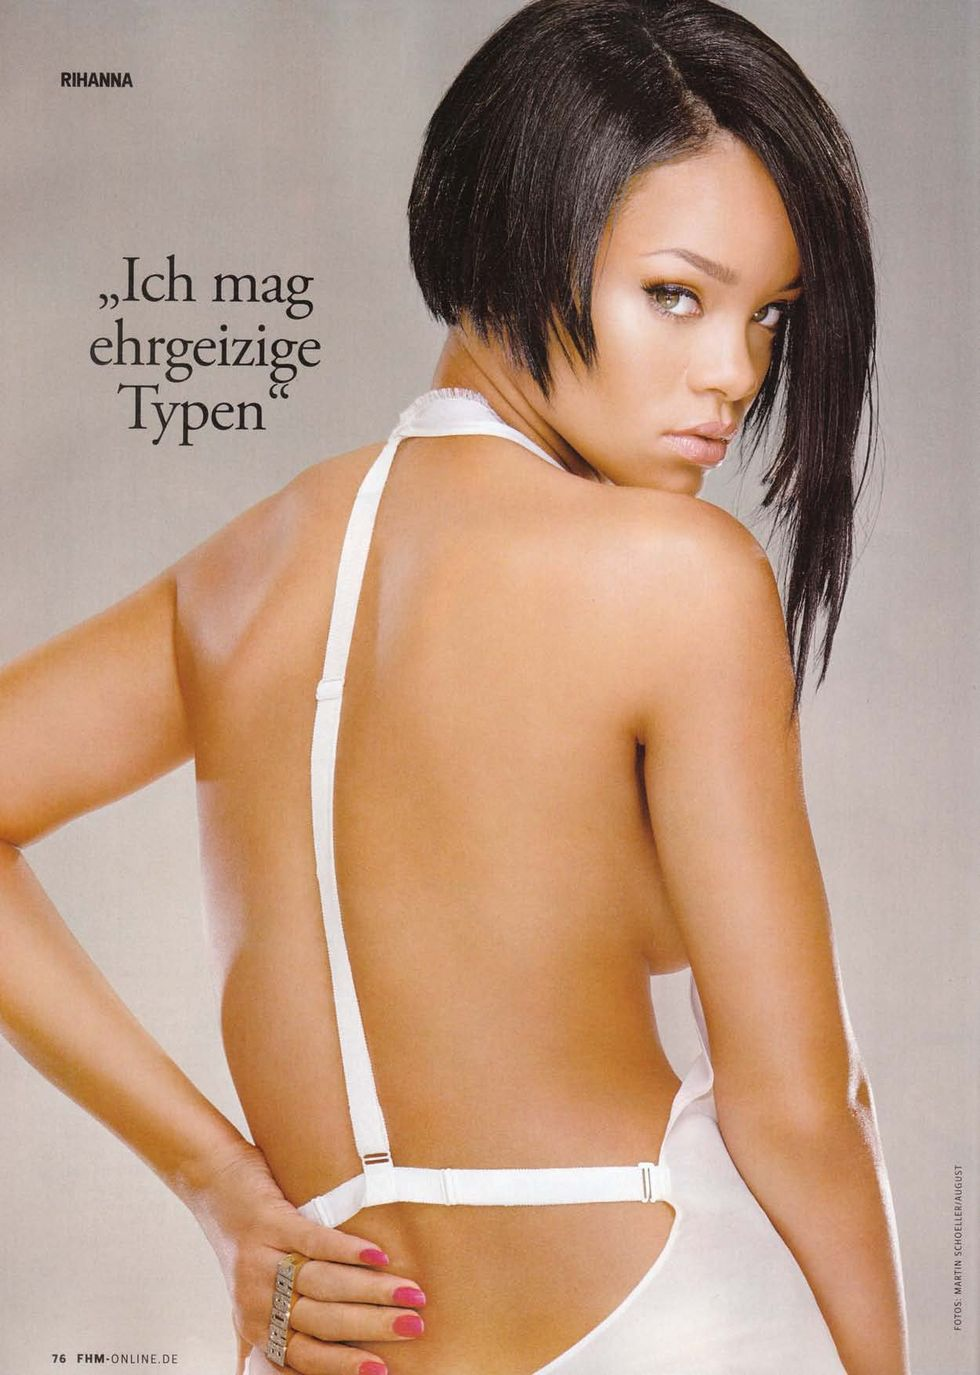 rihanna-fhm-magazine-germany-january-2008-01